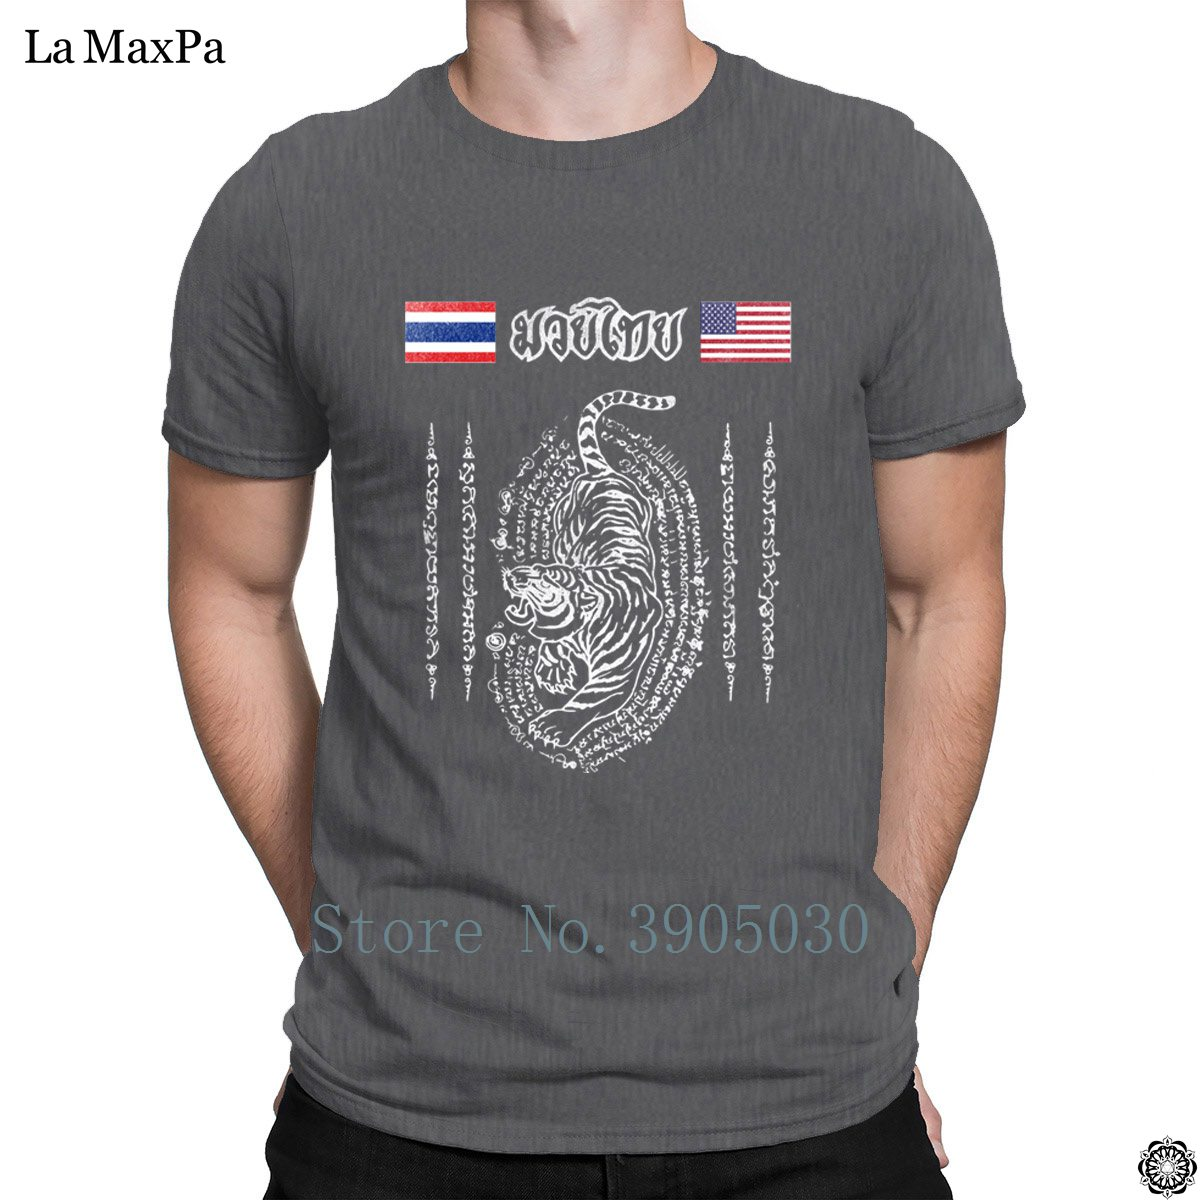 Slogan Authentic T Shirt Muay Thai America To Thailand Tiger For Men Uni Tshirt Xl Leisure Tee Top